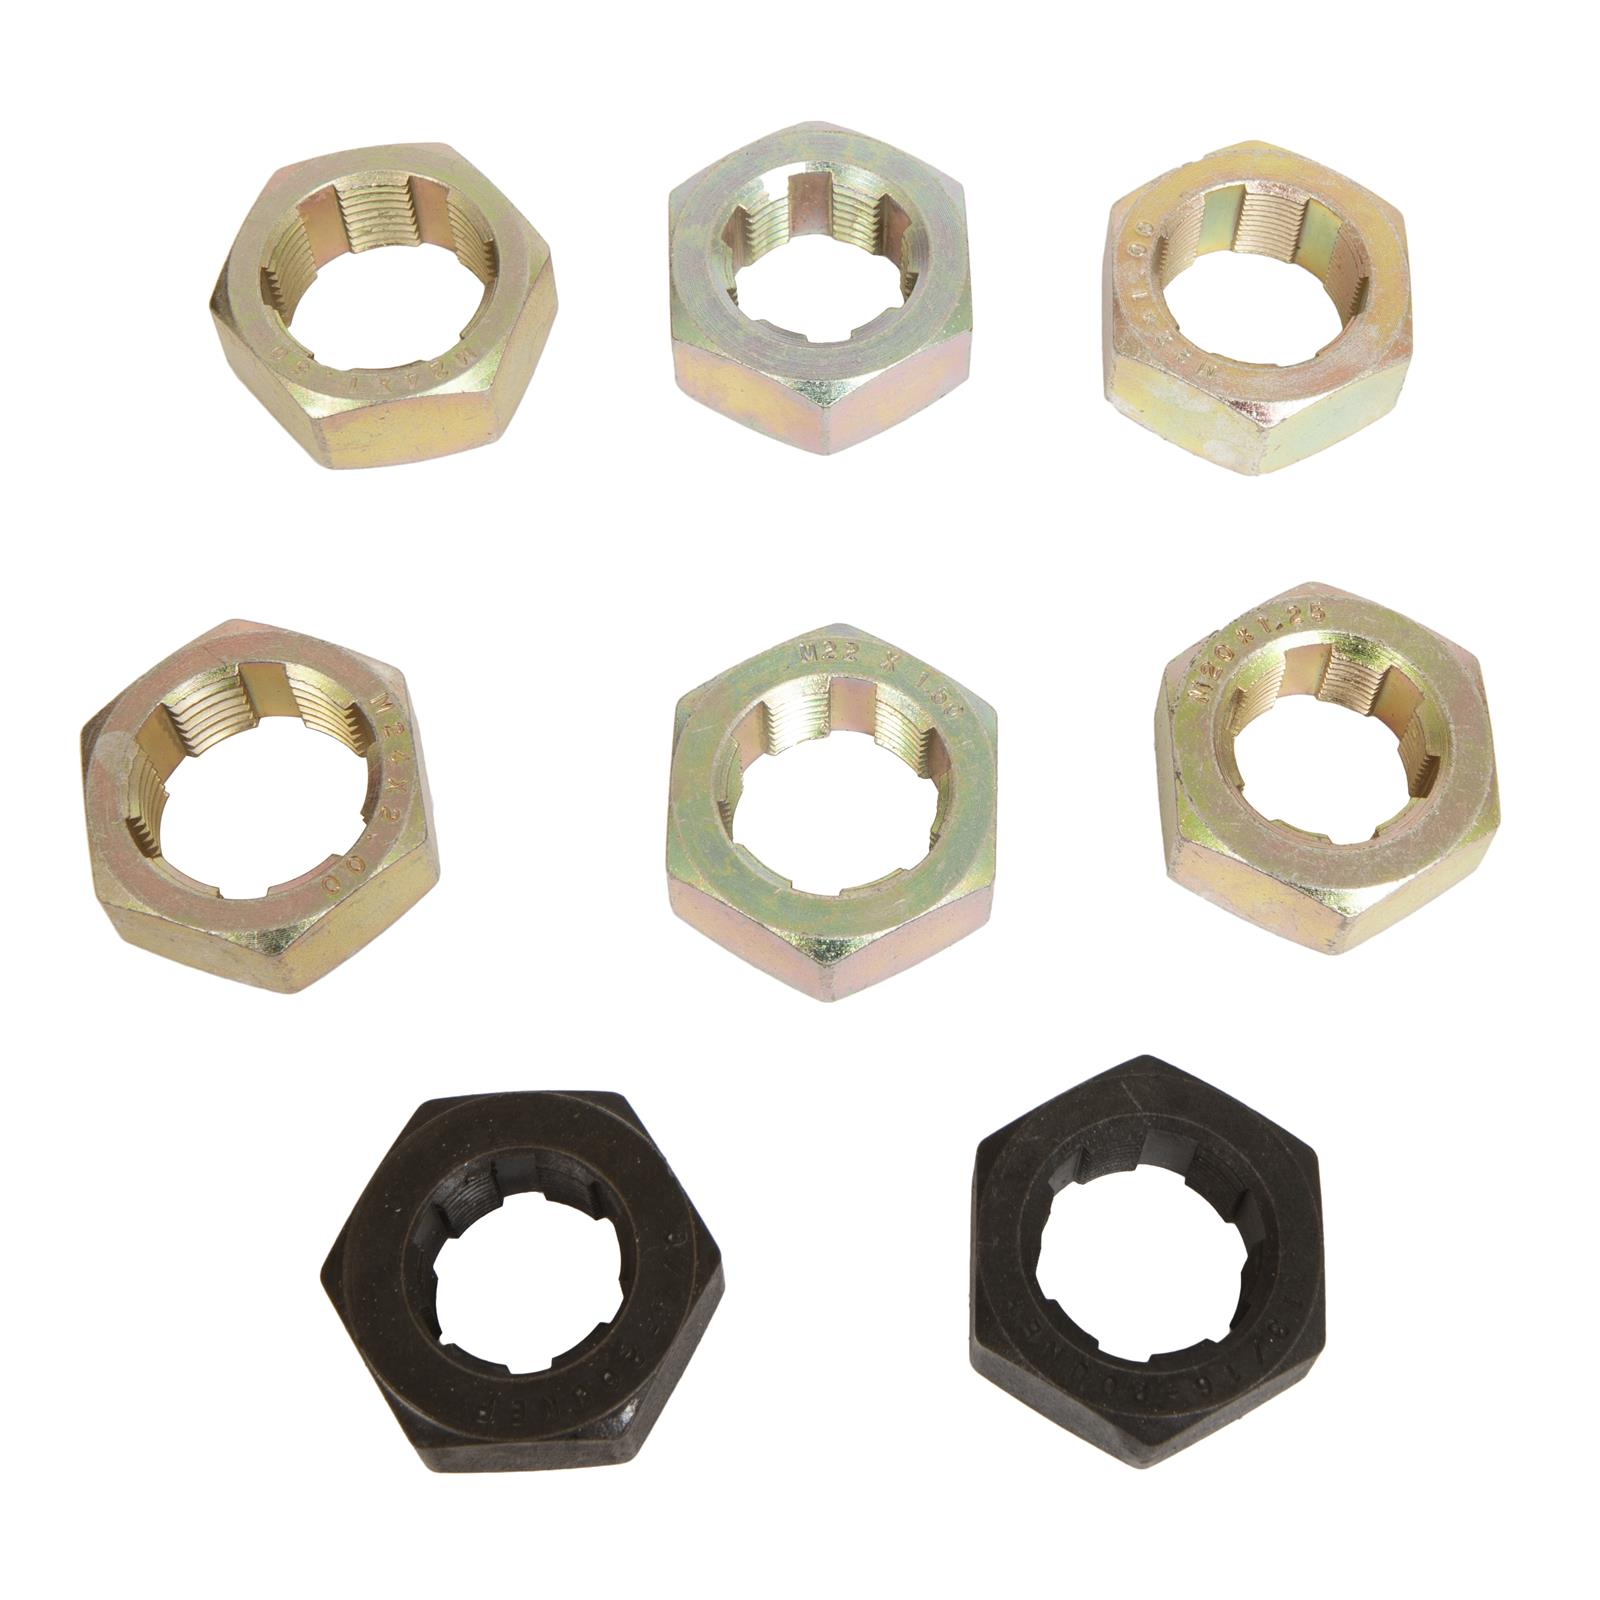 Lang Tools 2577 8 piece Light Truck Spindle Rethread Kit